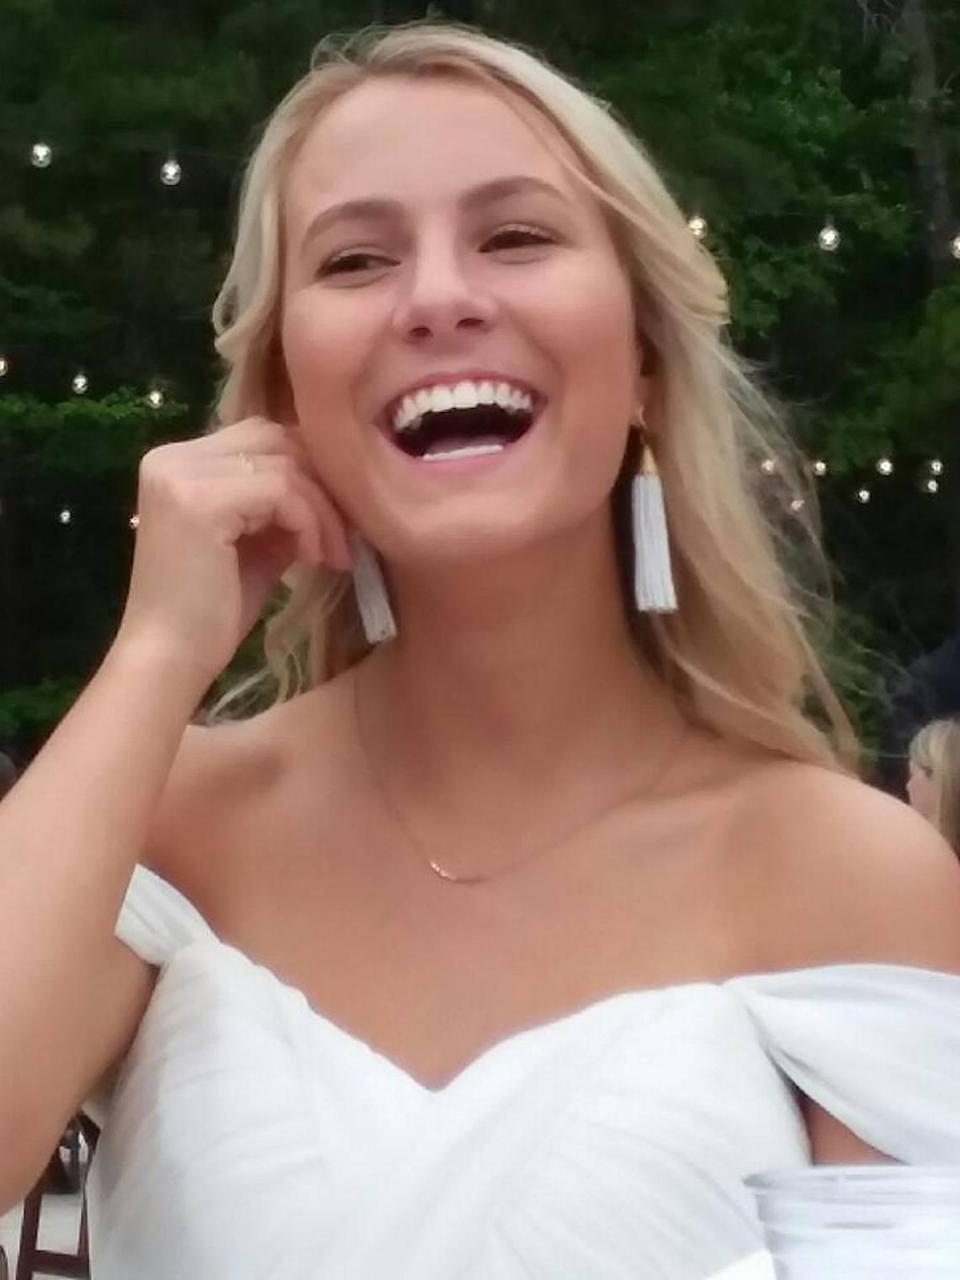 Mallory Beach, 19, of Hampton County, was killed in a boat crash on Archers Creek on Feb. 24, 2019.